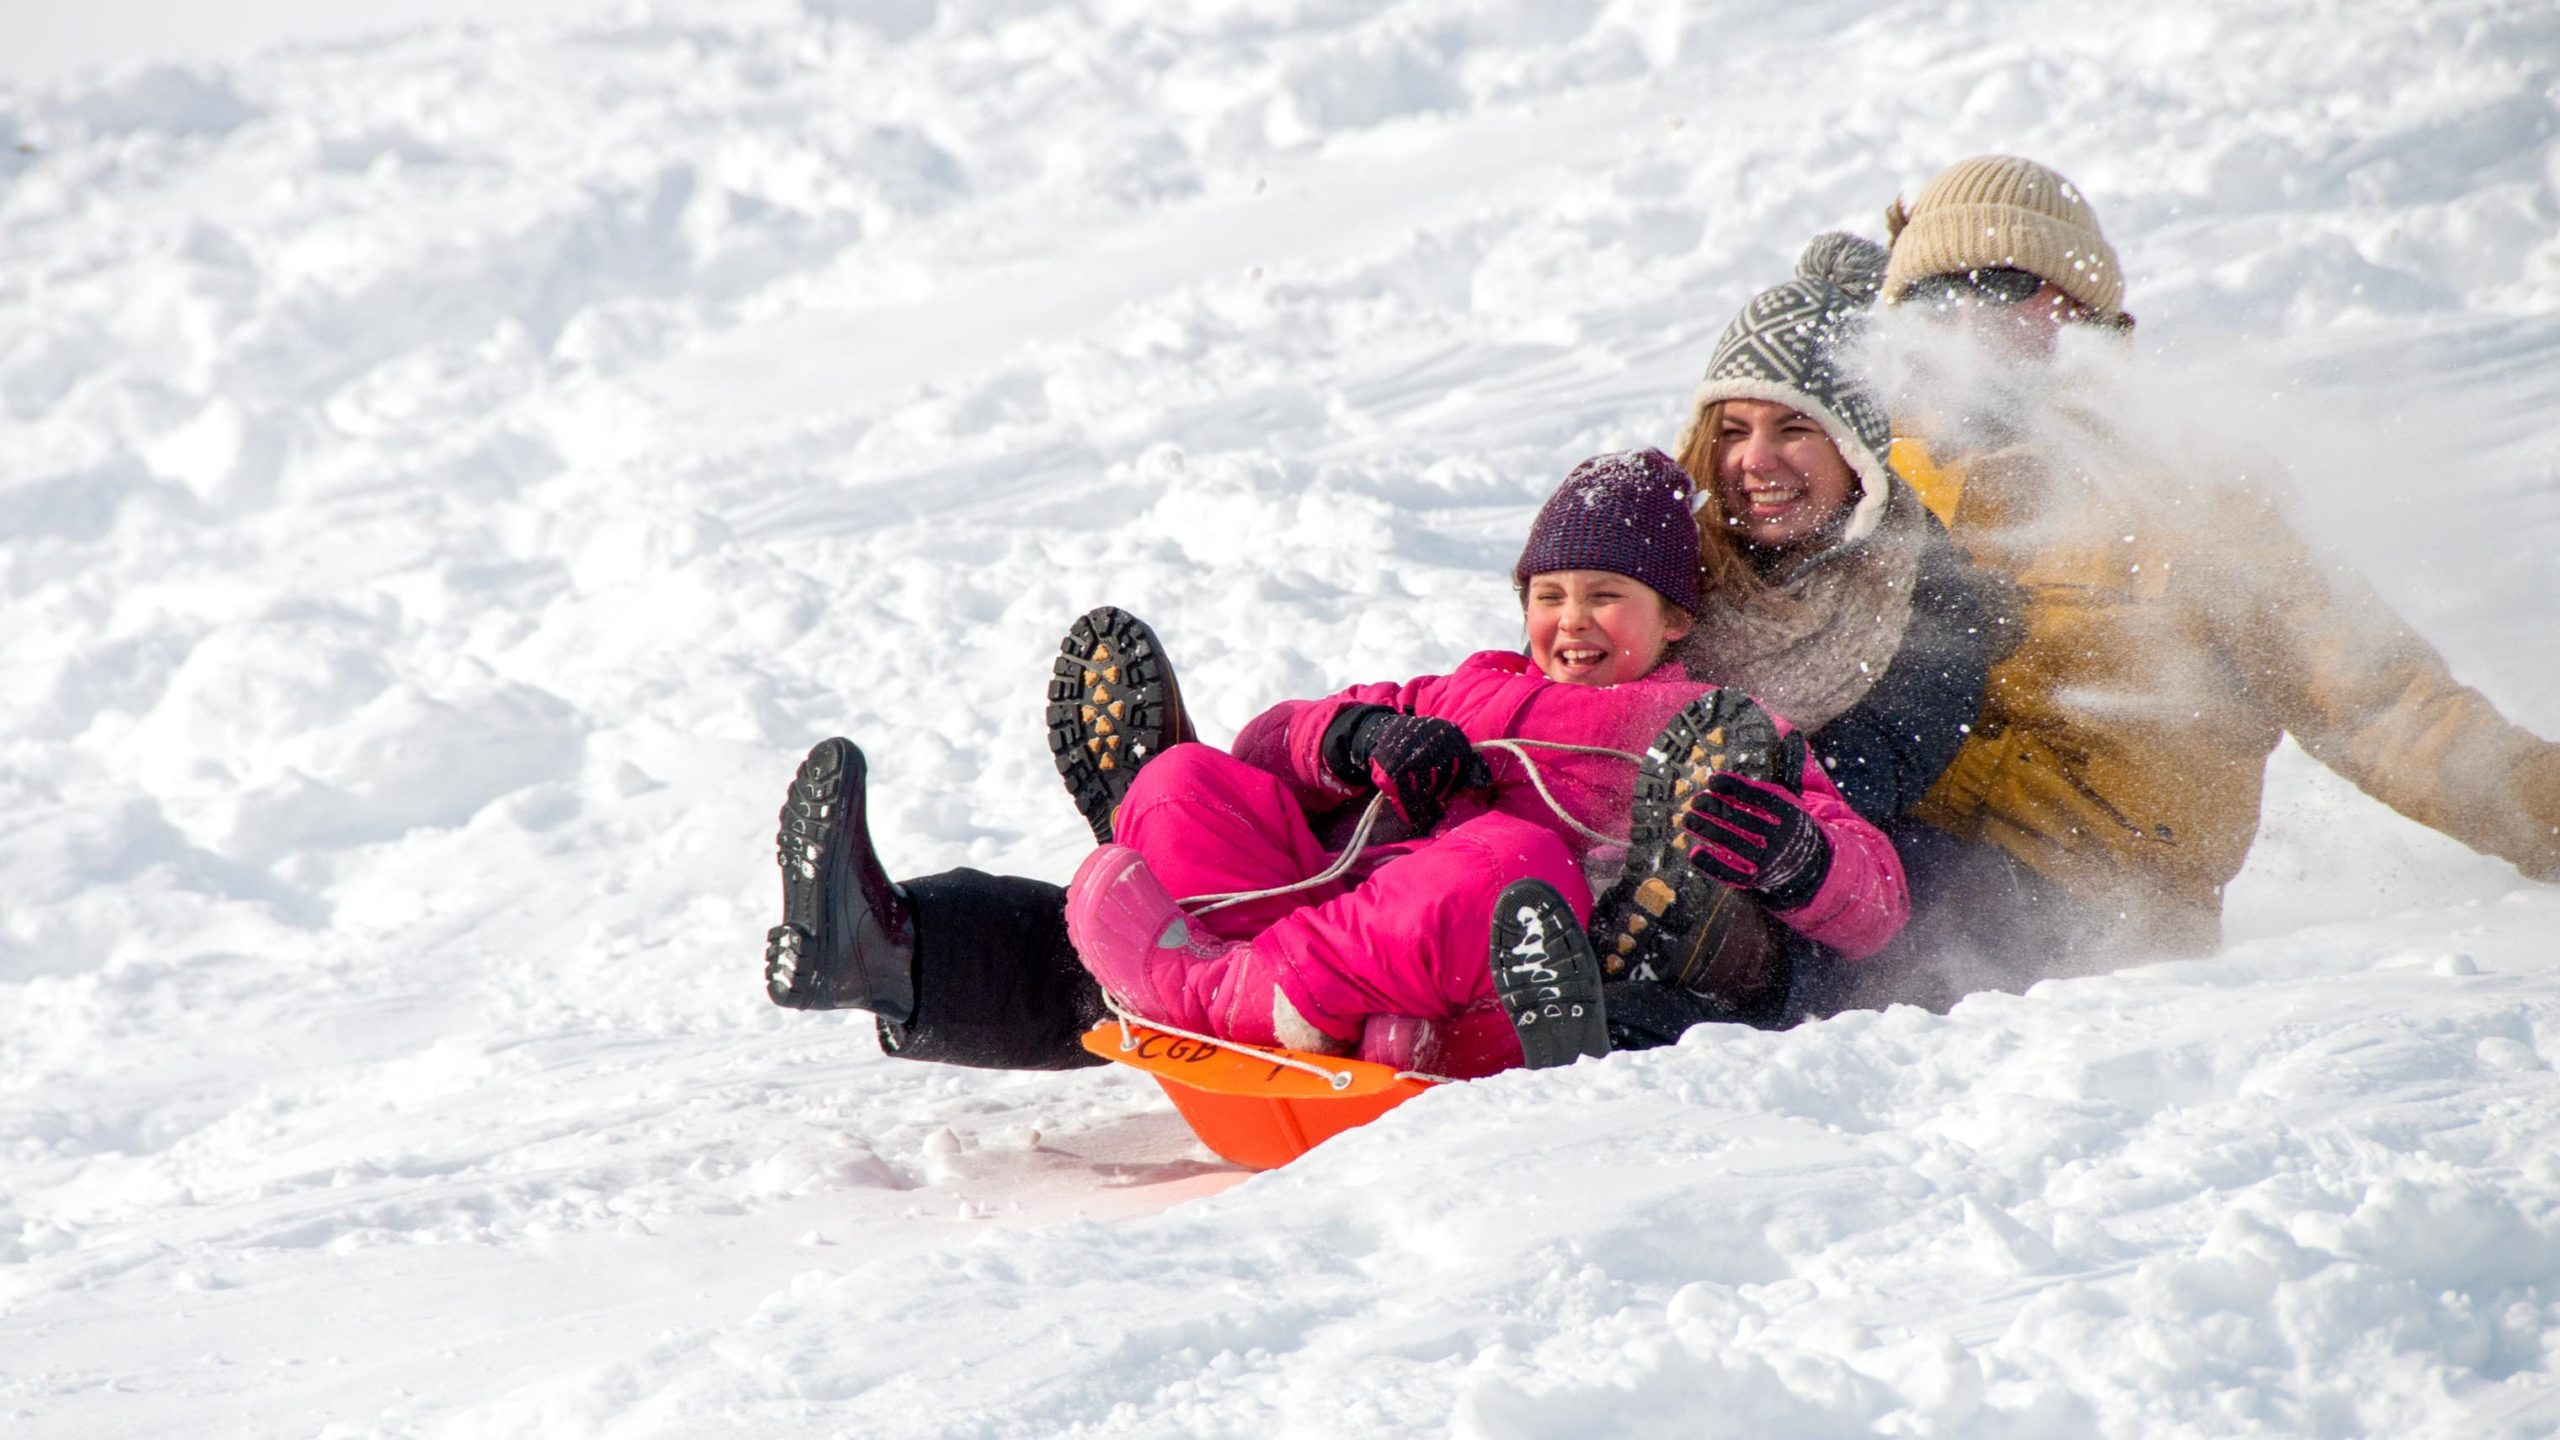 Campers laughing while sledding down a hill.